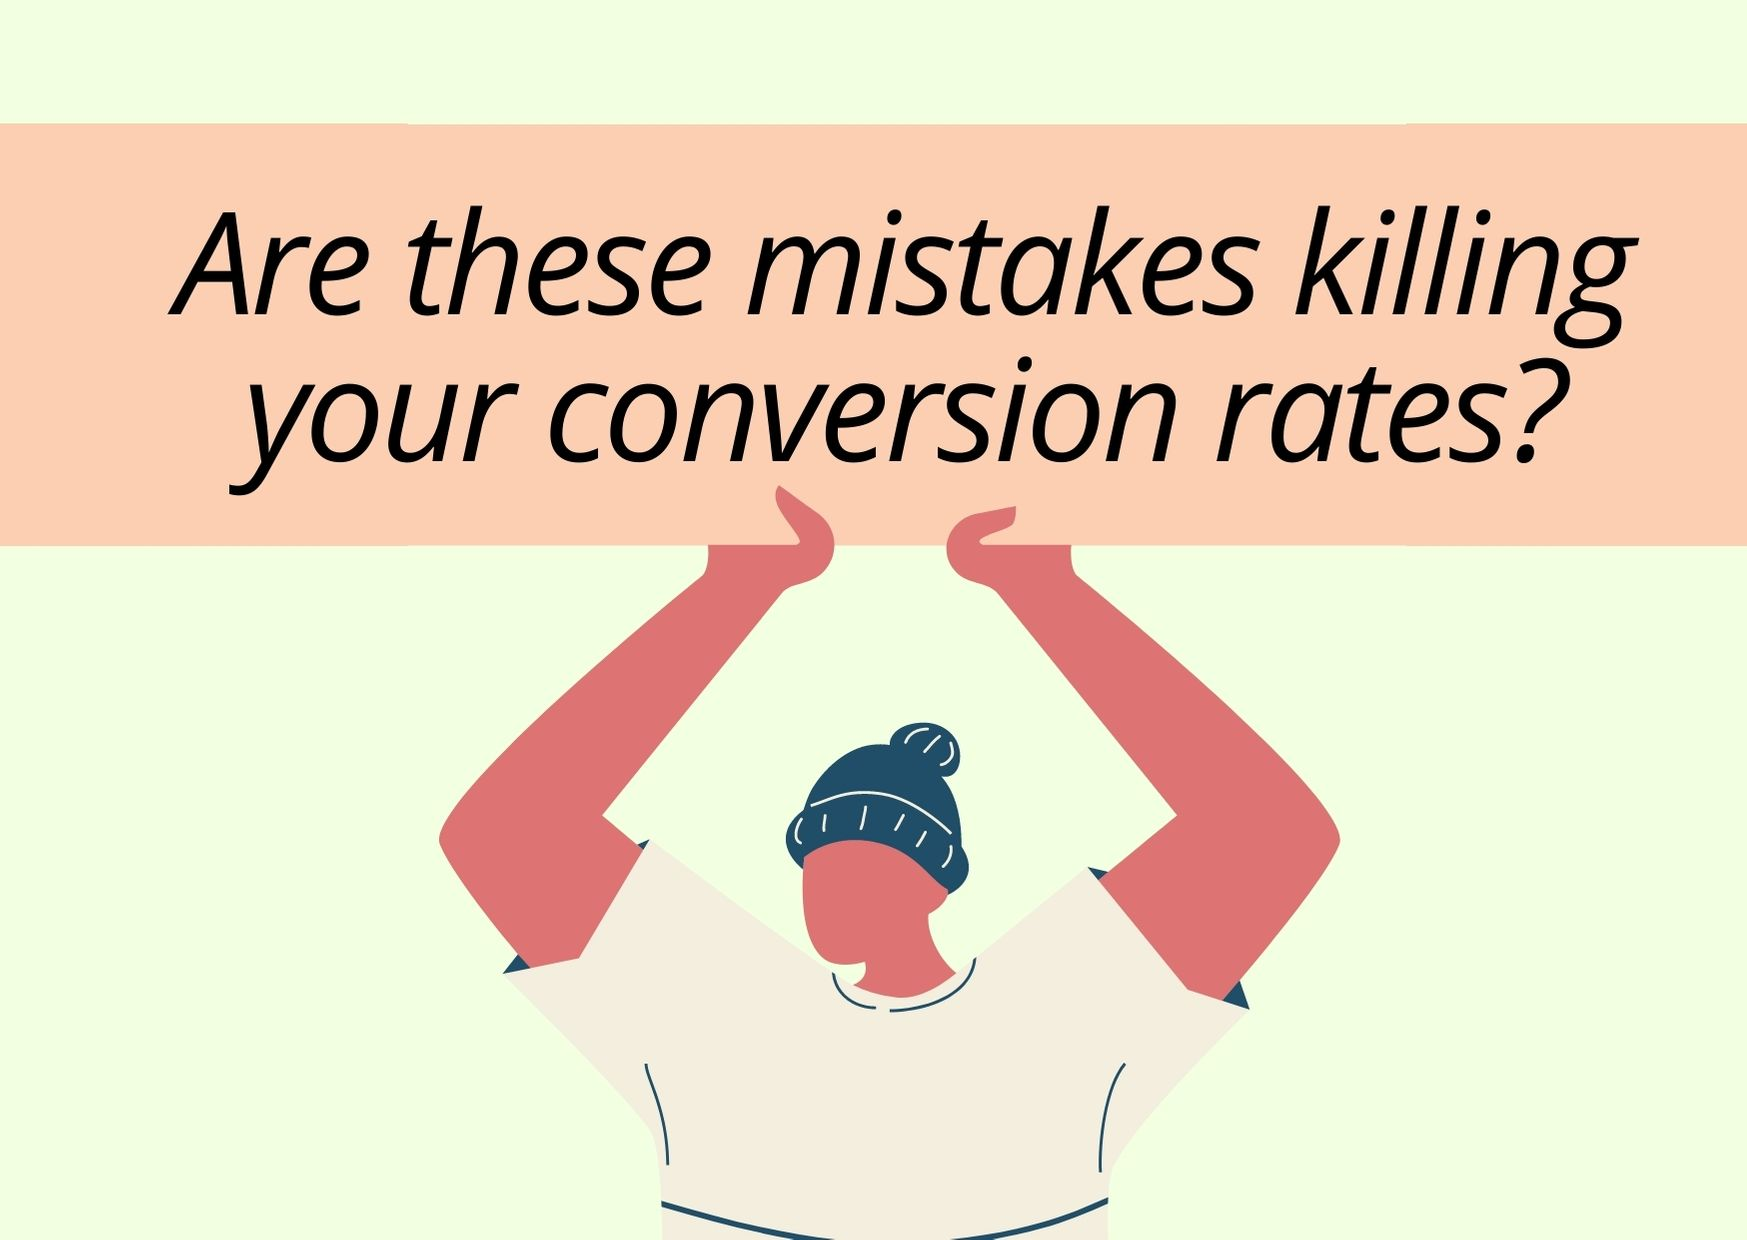 Are These Mistakes Killing Your Conversion Rates?